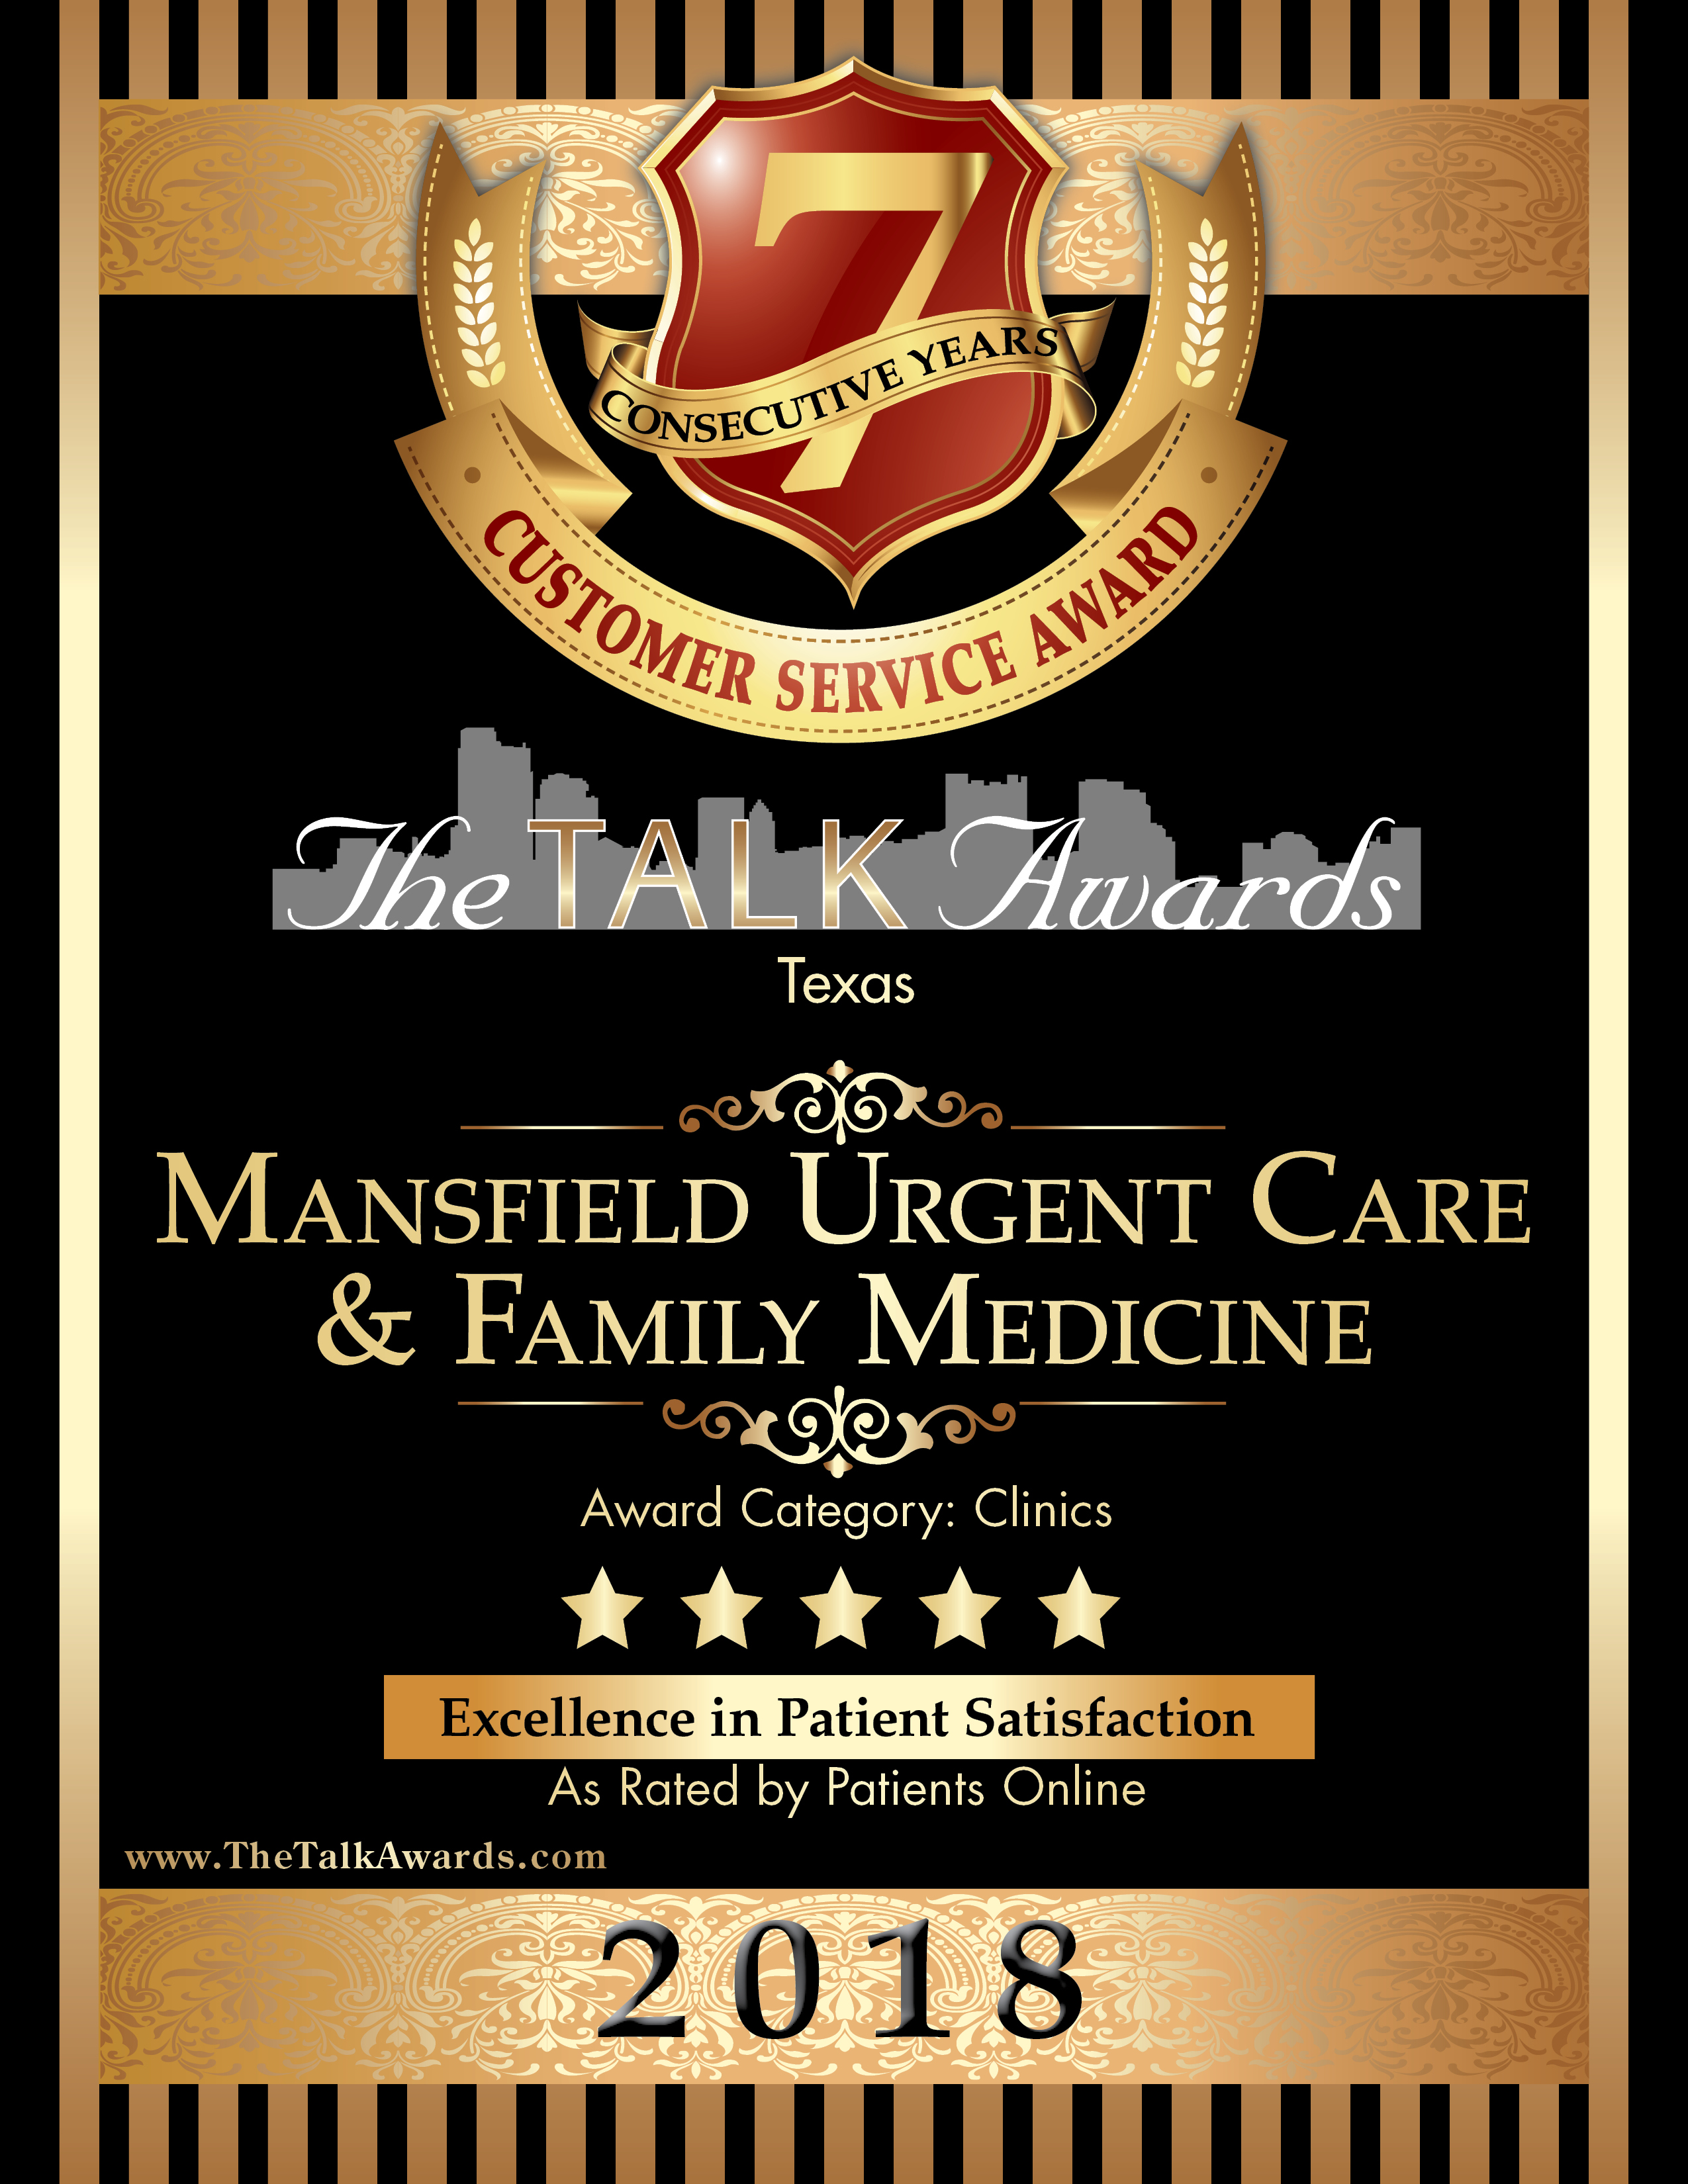 Five Star, TALK Award Winner, Mansfield Urgent Care & Family Medicine Certificate